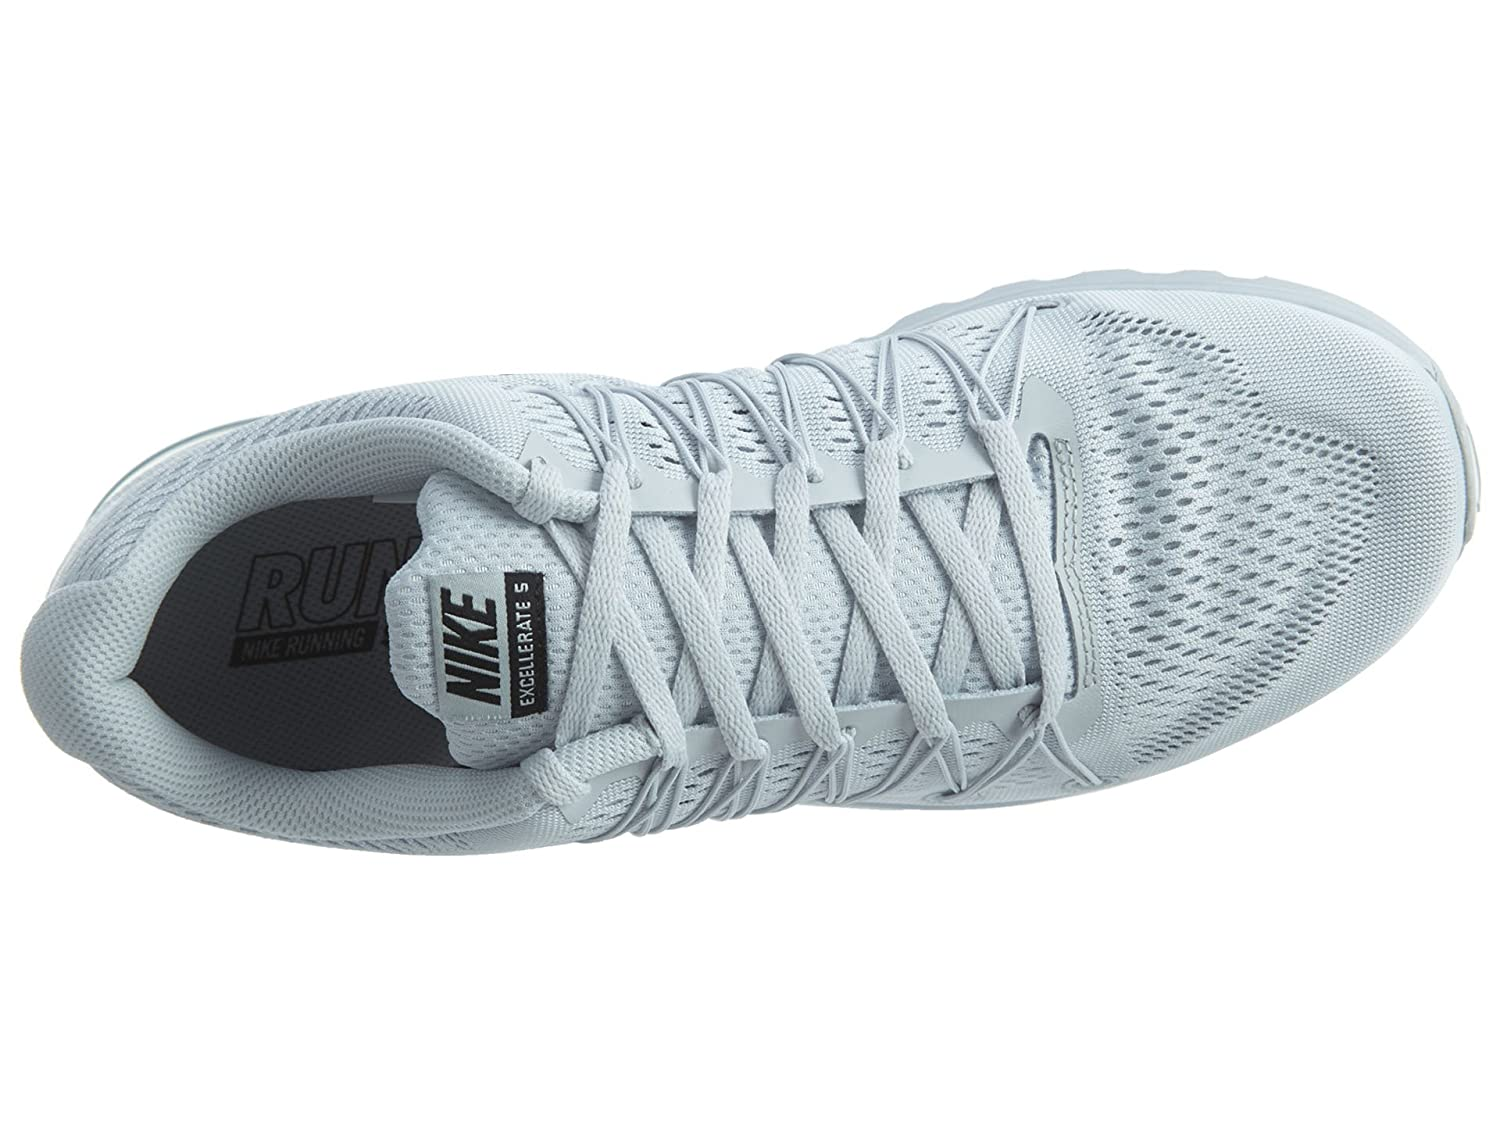 a34cdc1e91698 Nike Men s AIR MAX Excellerate 5 White Running Shoes-8 UK India(42.5 EU) ( 852692-004)  Buy Online at Low Prices in India - Amazon.in